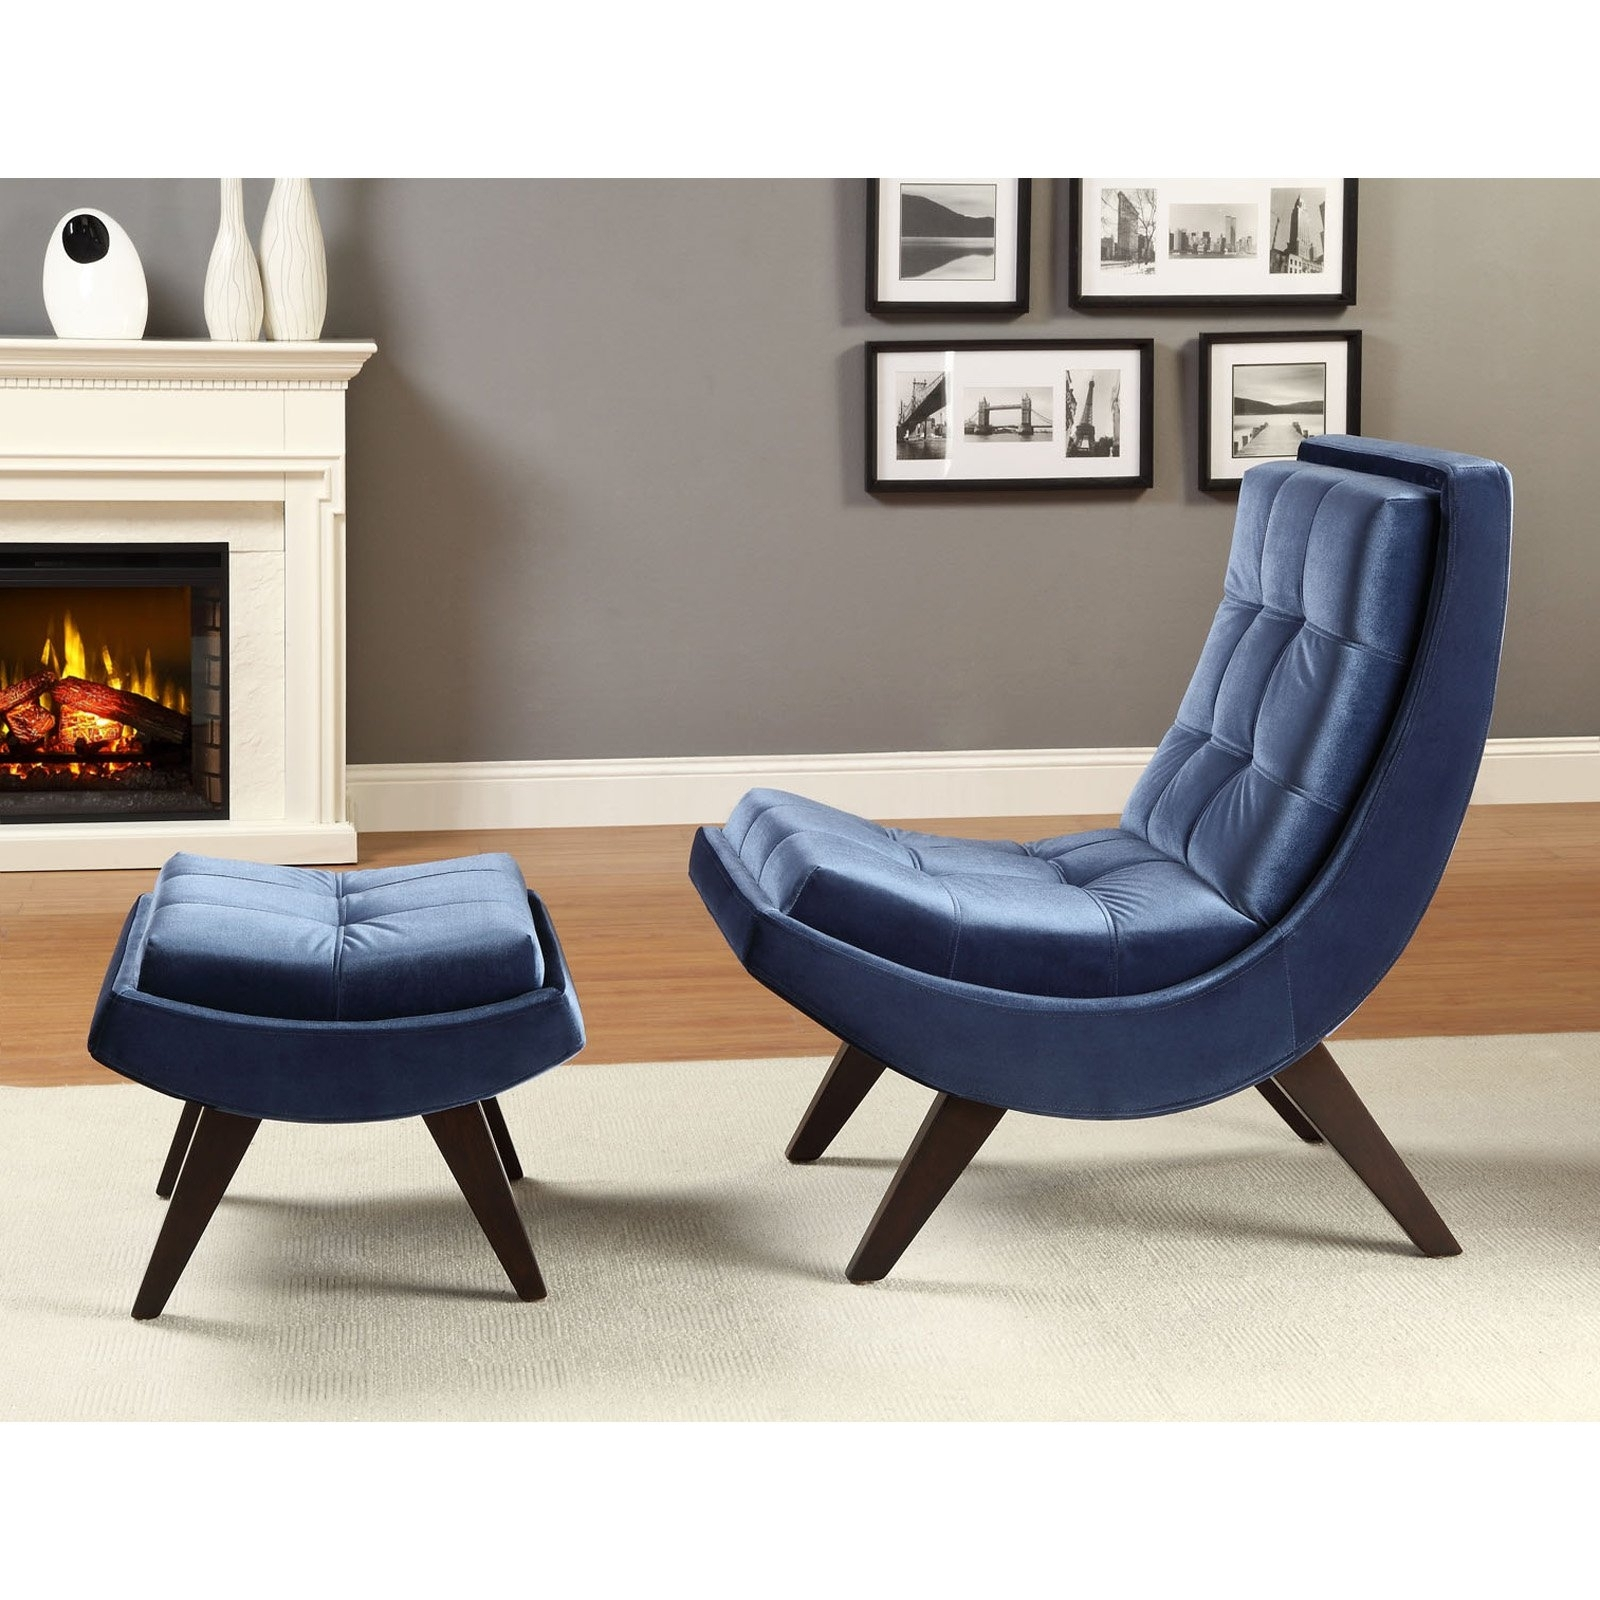 Famous Chaise Lounge Chairs With Ottoman Within Chaise Lounge Chair With Ottoman • Lounge Chairs Ideas (View 3 of 15)